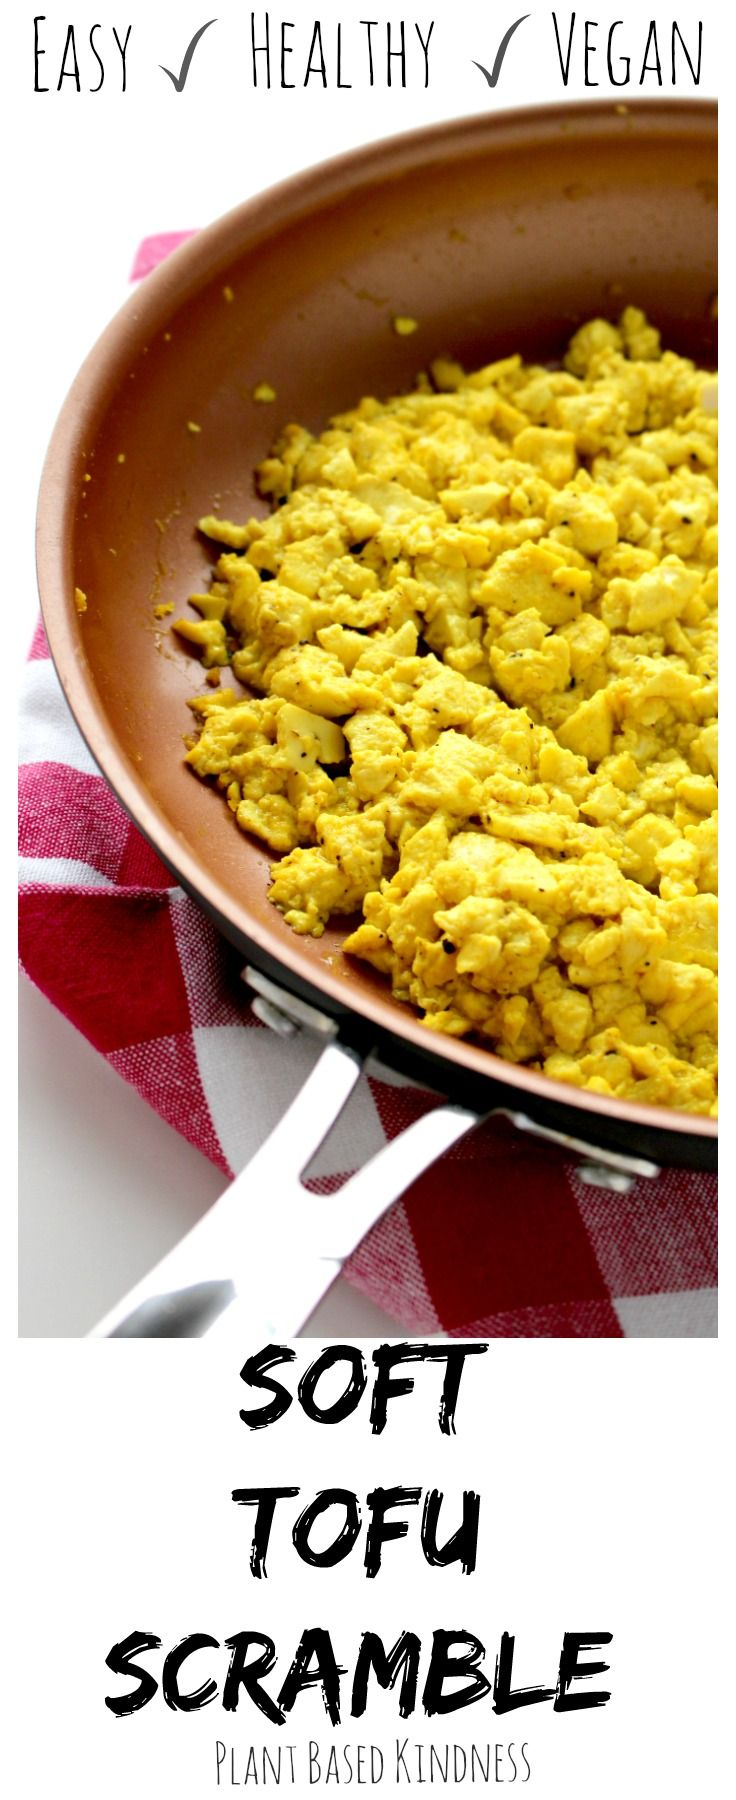 The best tofu scramble ever. It even looks like real eggs! You could fool anyone with this soft tofu scramble! It's vegan,gluten-free, and healthy!